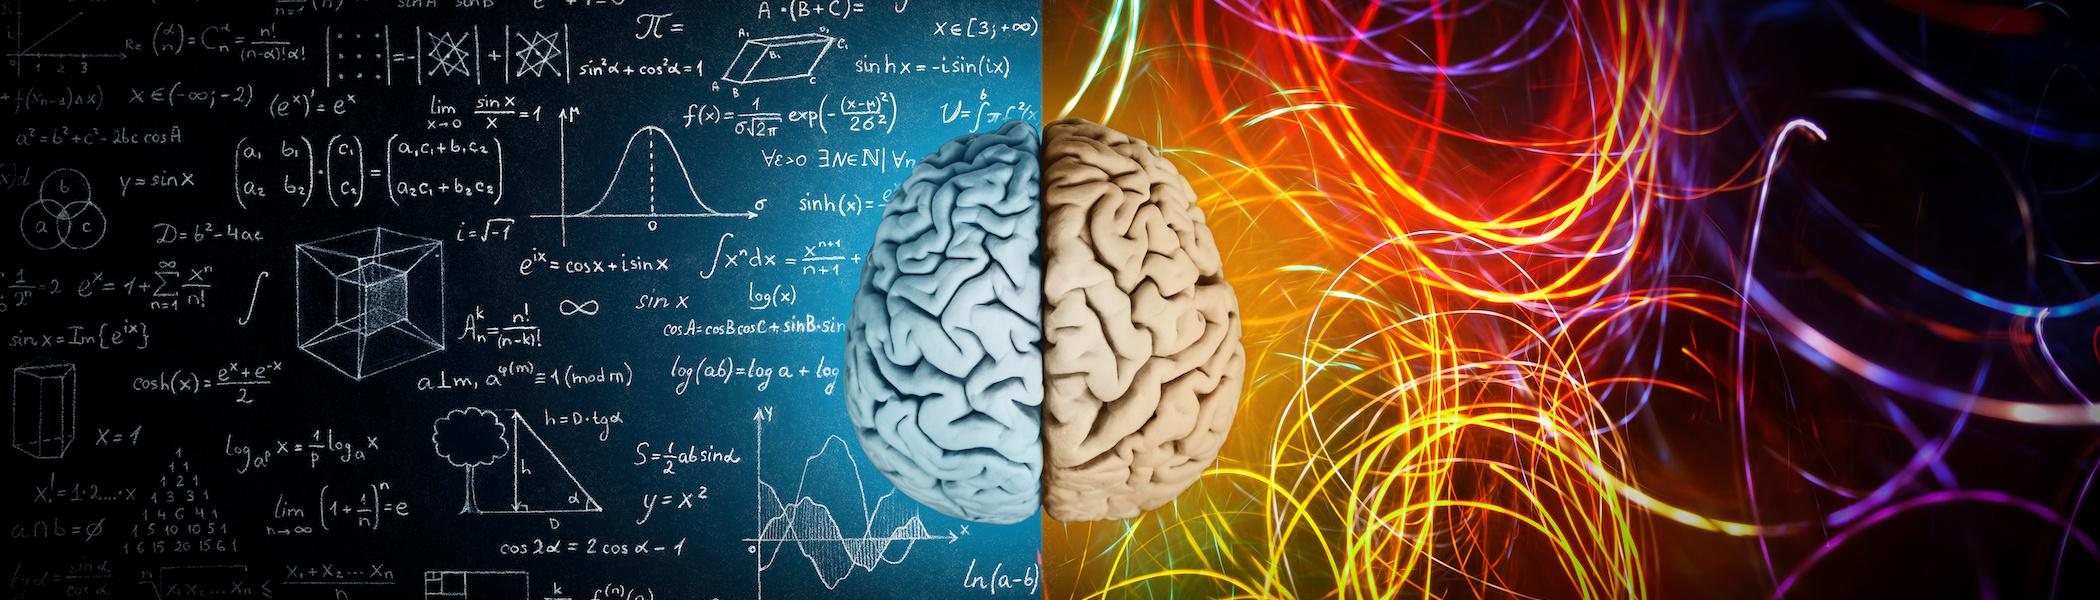 A visualization of a brain processing a variety of thoughts and equations